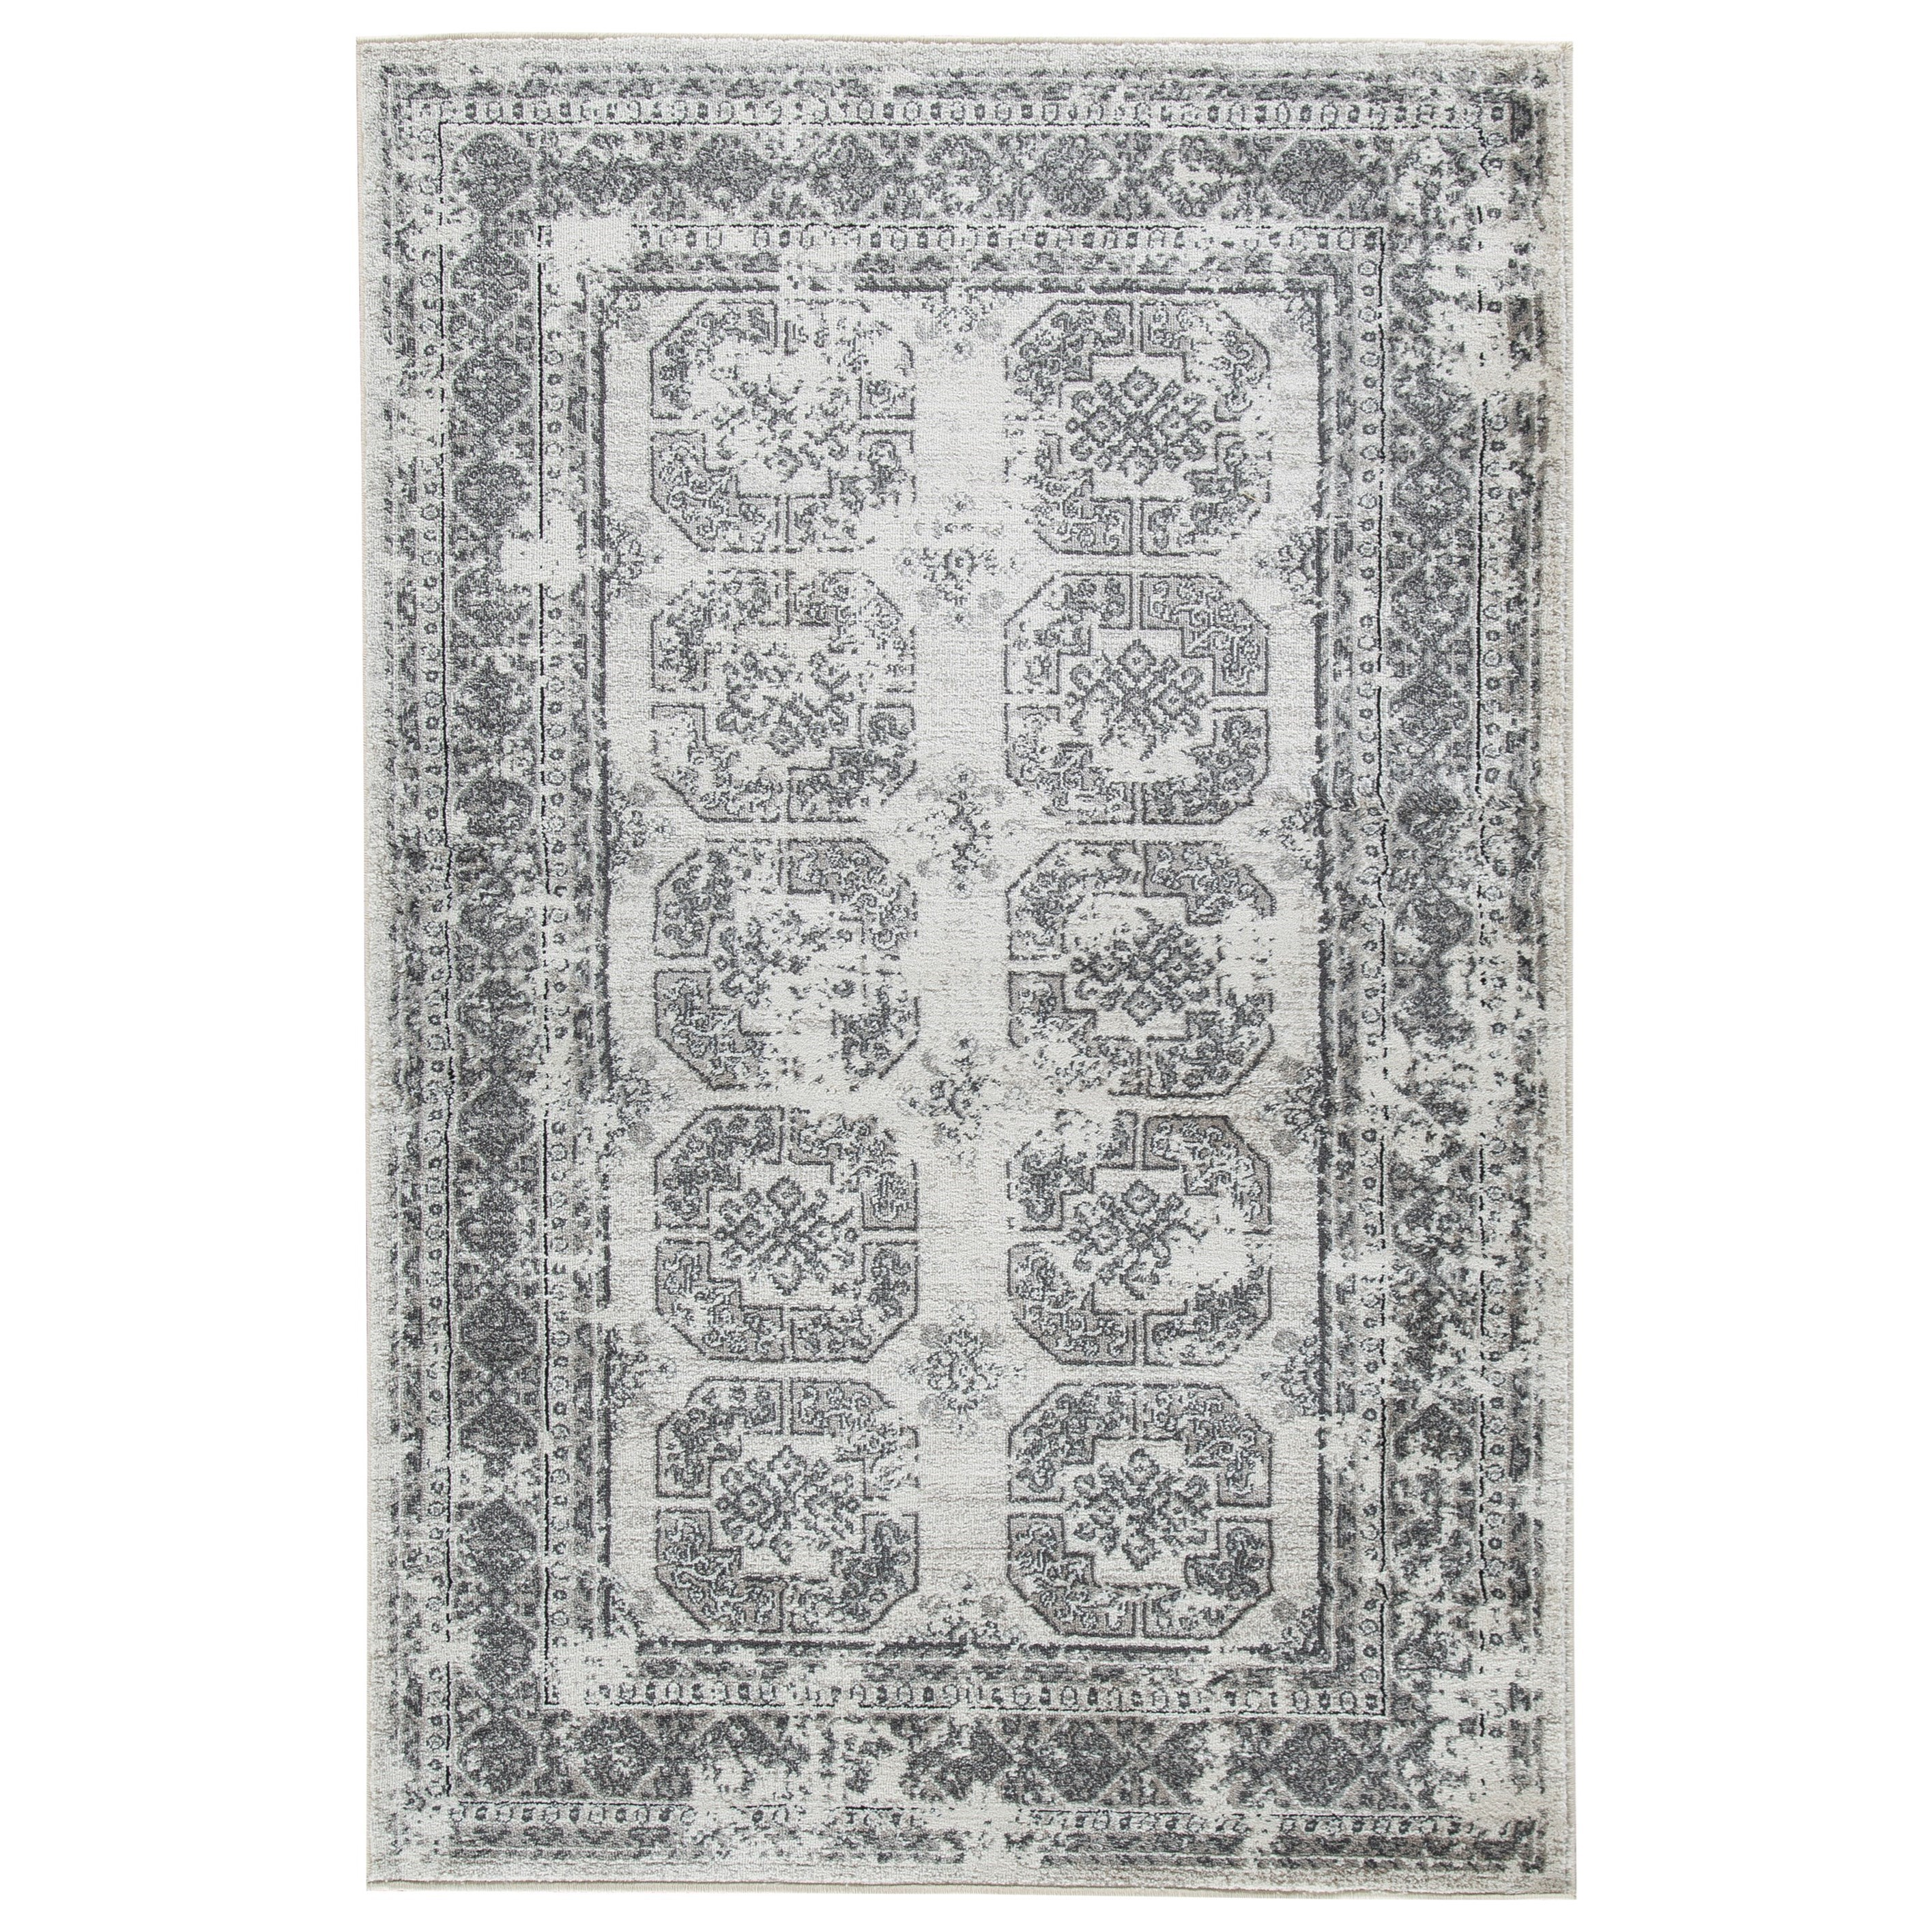 Transitional Area Rugs Jirou Gray/Taupe Large Rug by Signature at Walker's Furniture